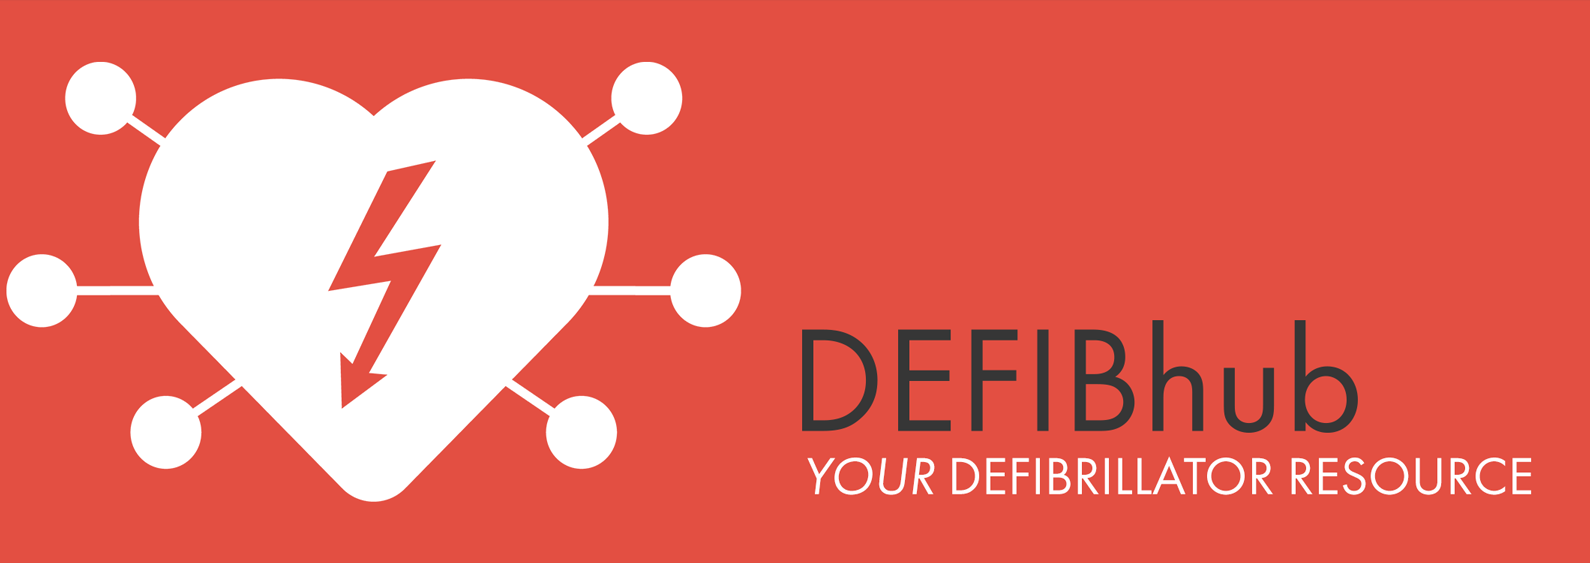 DEFIBhub your defibrillator resource